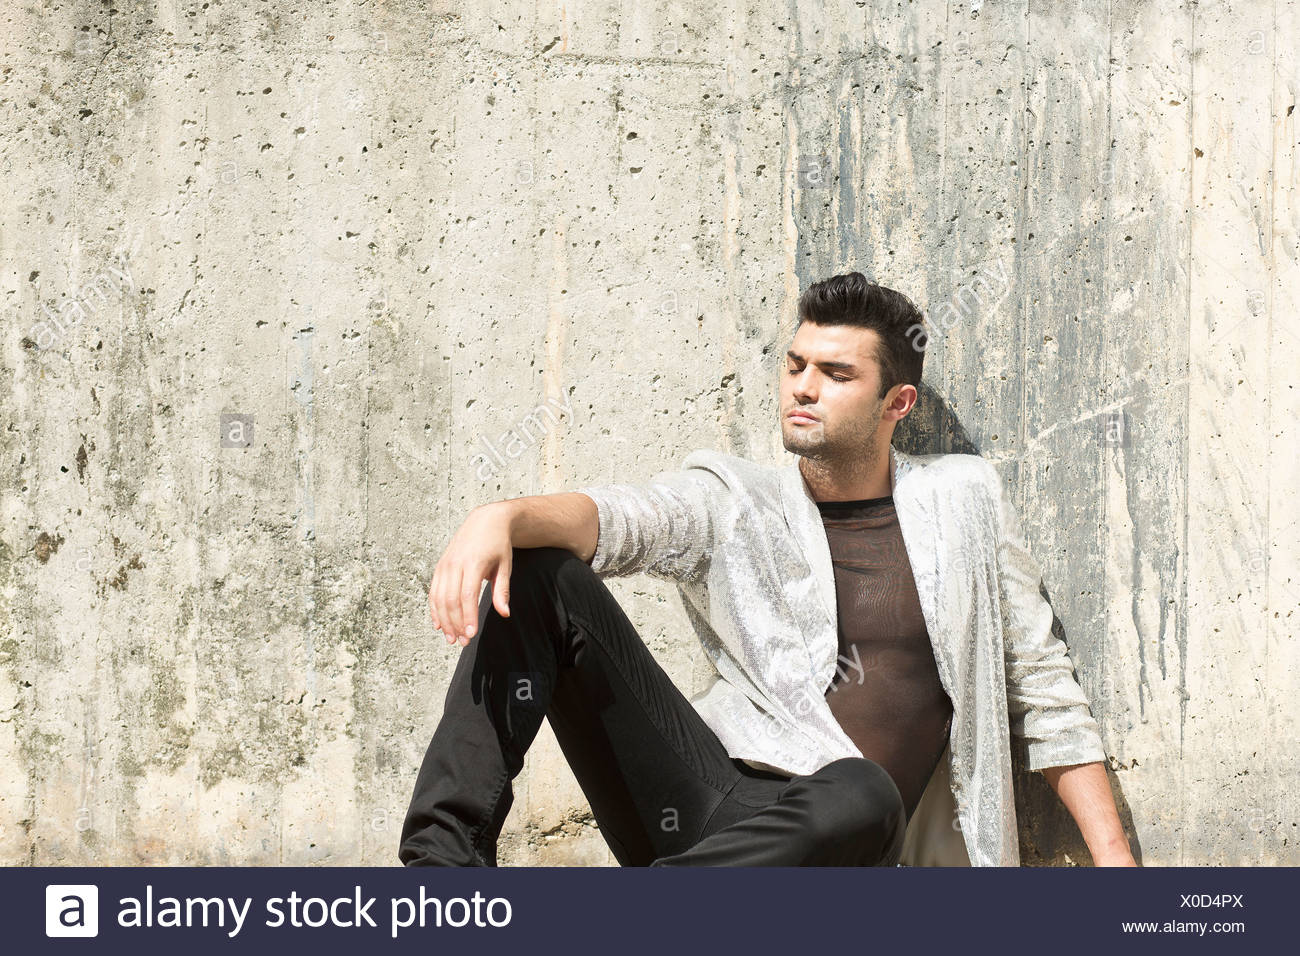 Man leaning against wall outdoors - Stock Image